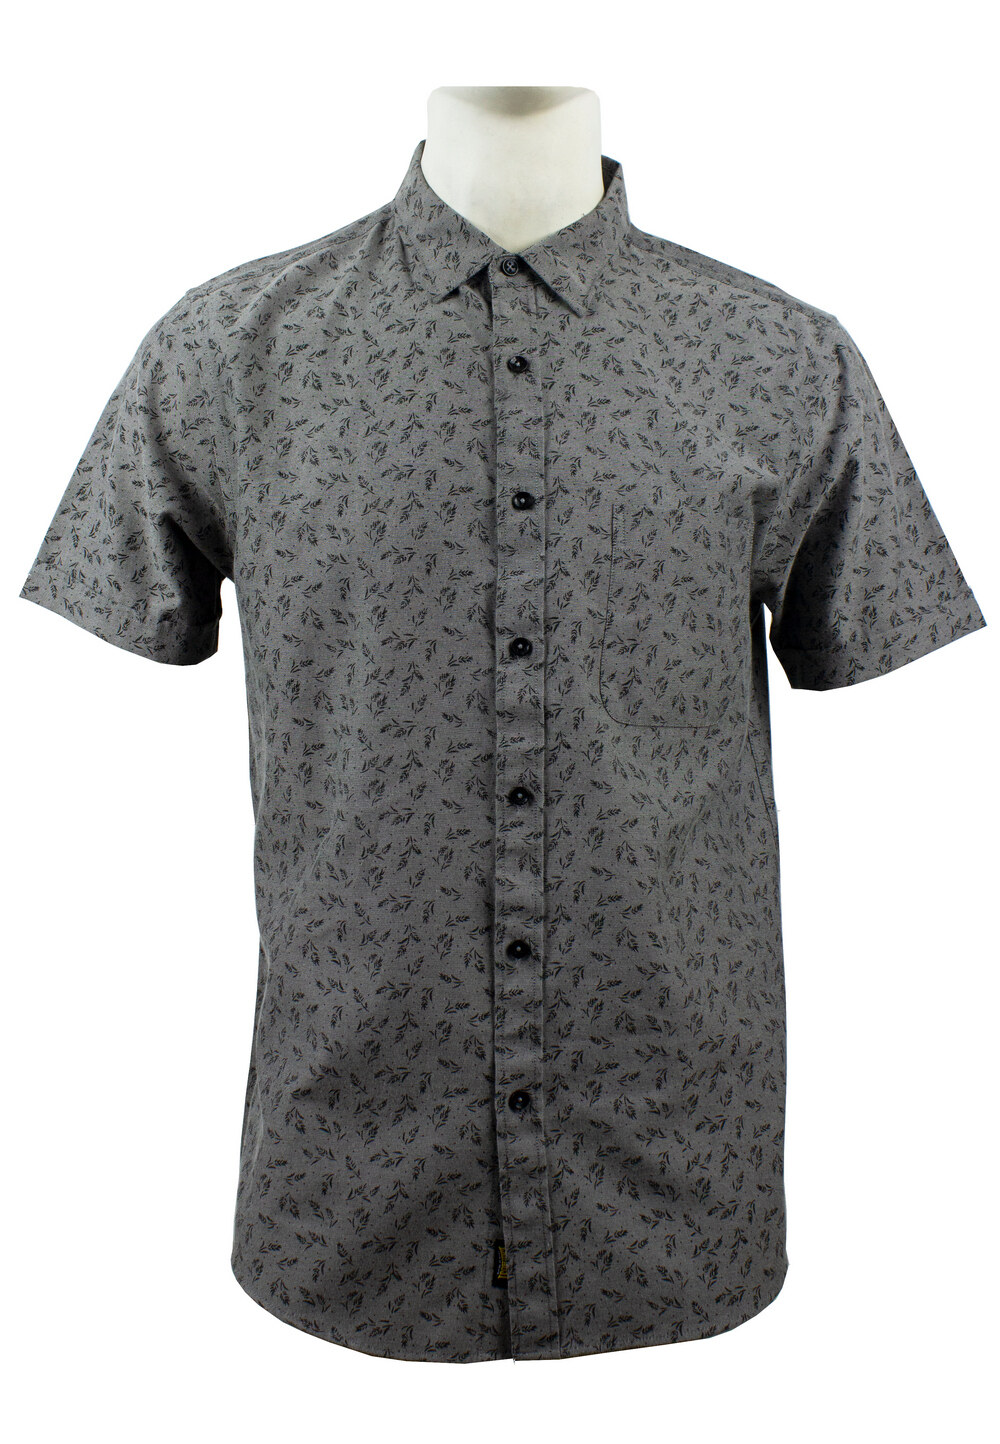 Men's Printed Short Sleeve Shirt 849